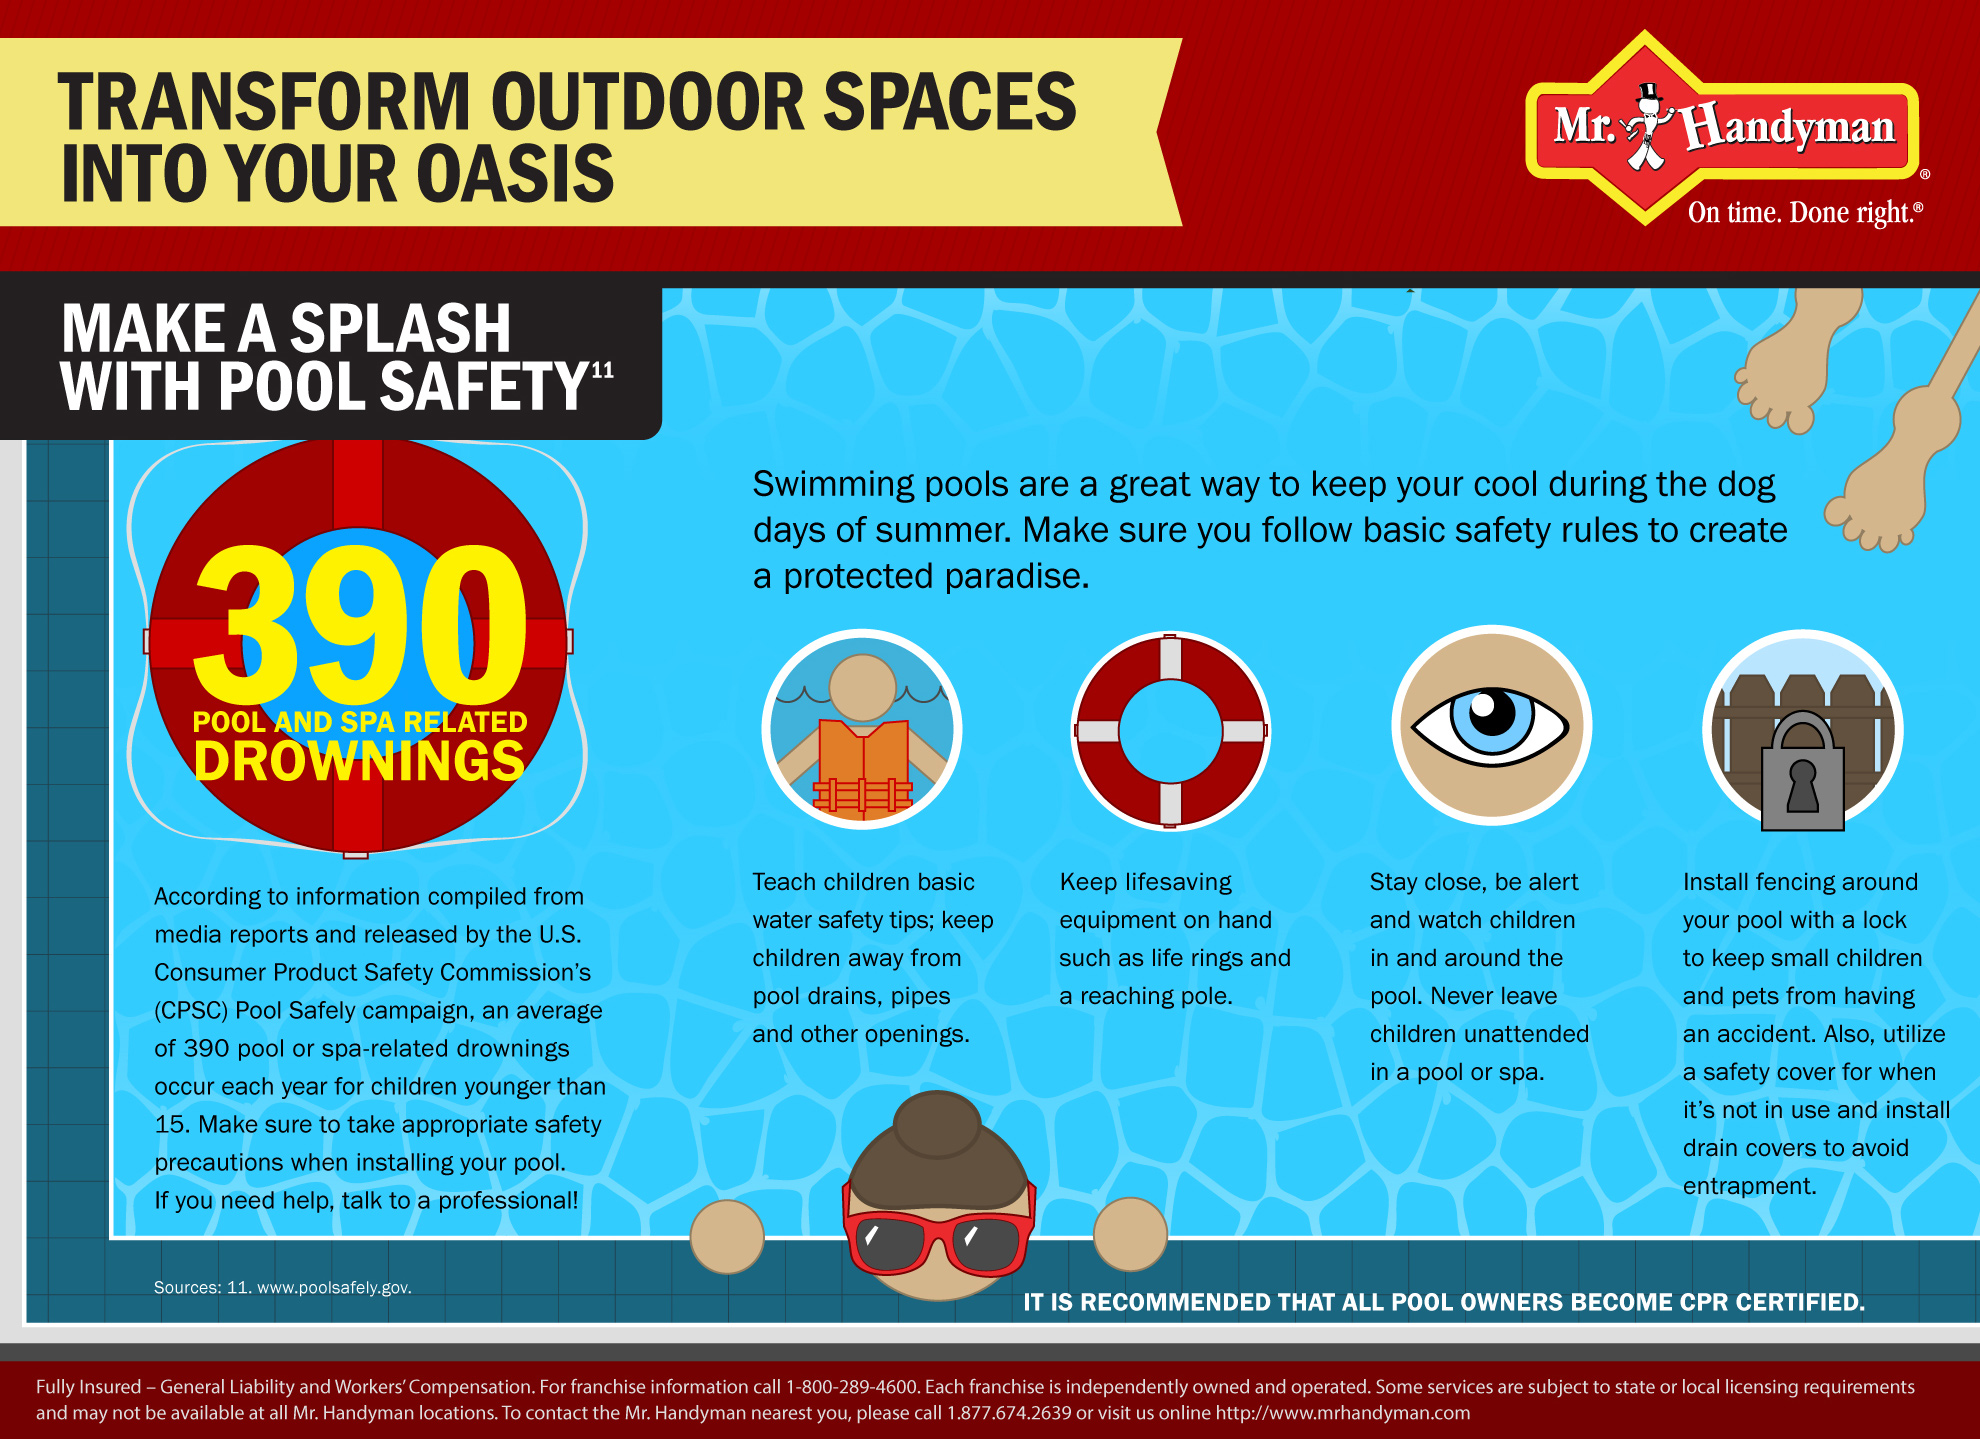 Make a Splash with Pool Safety   Pool Safety Tips